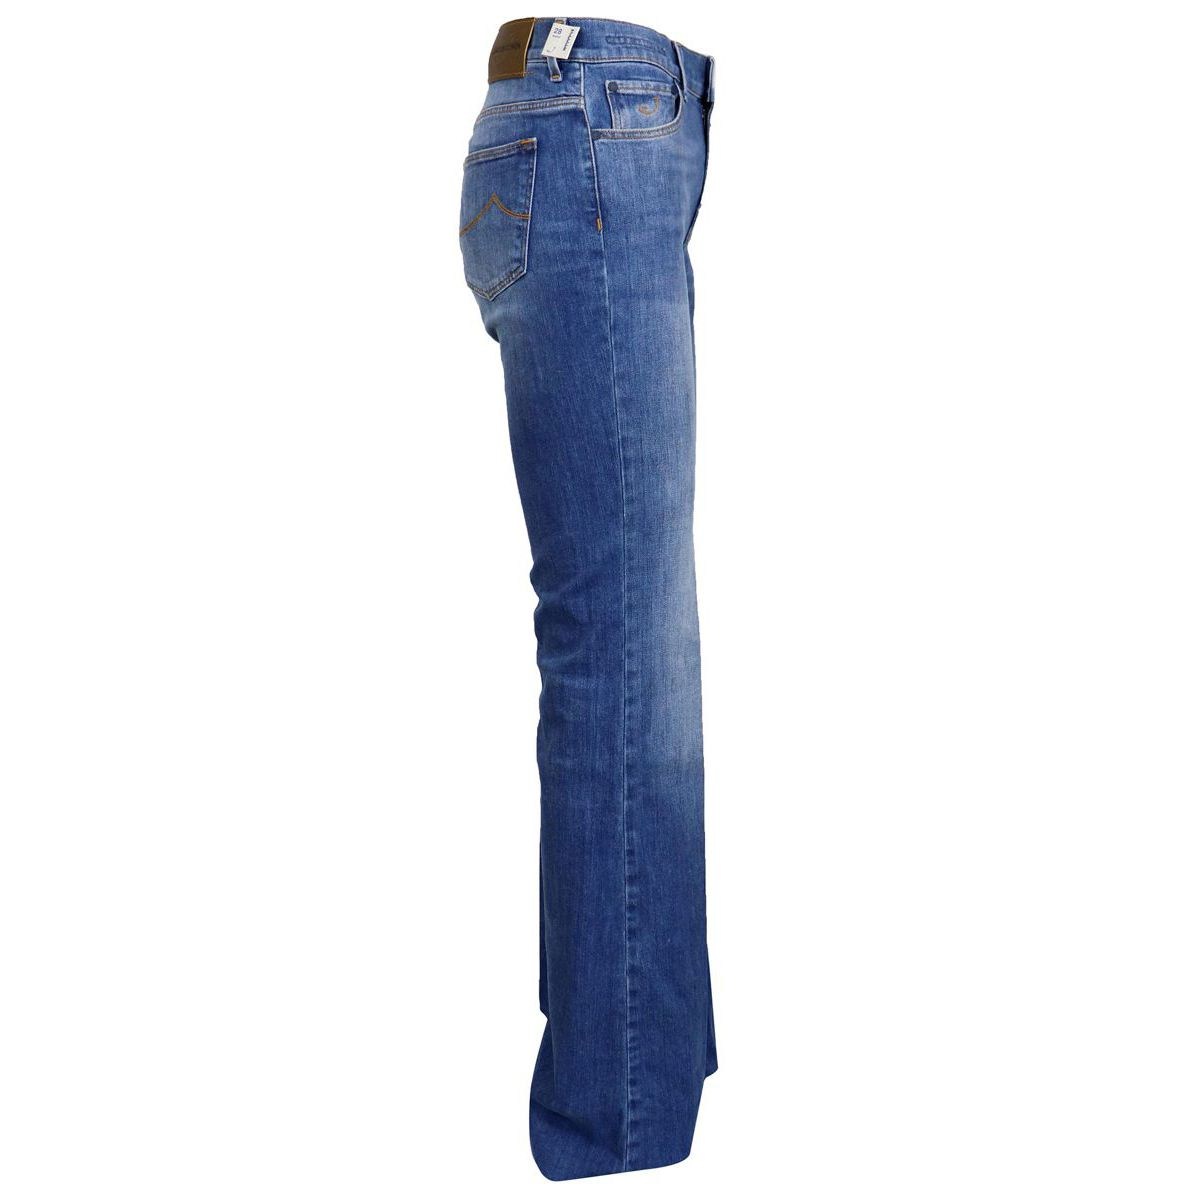 FRIDA jeans flared model Denim Jacob Cohen